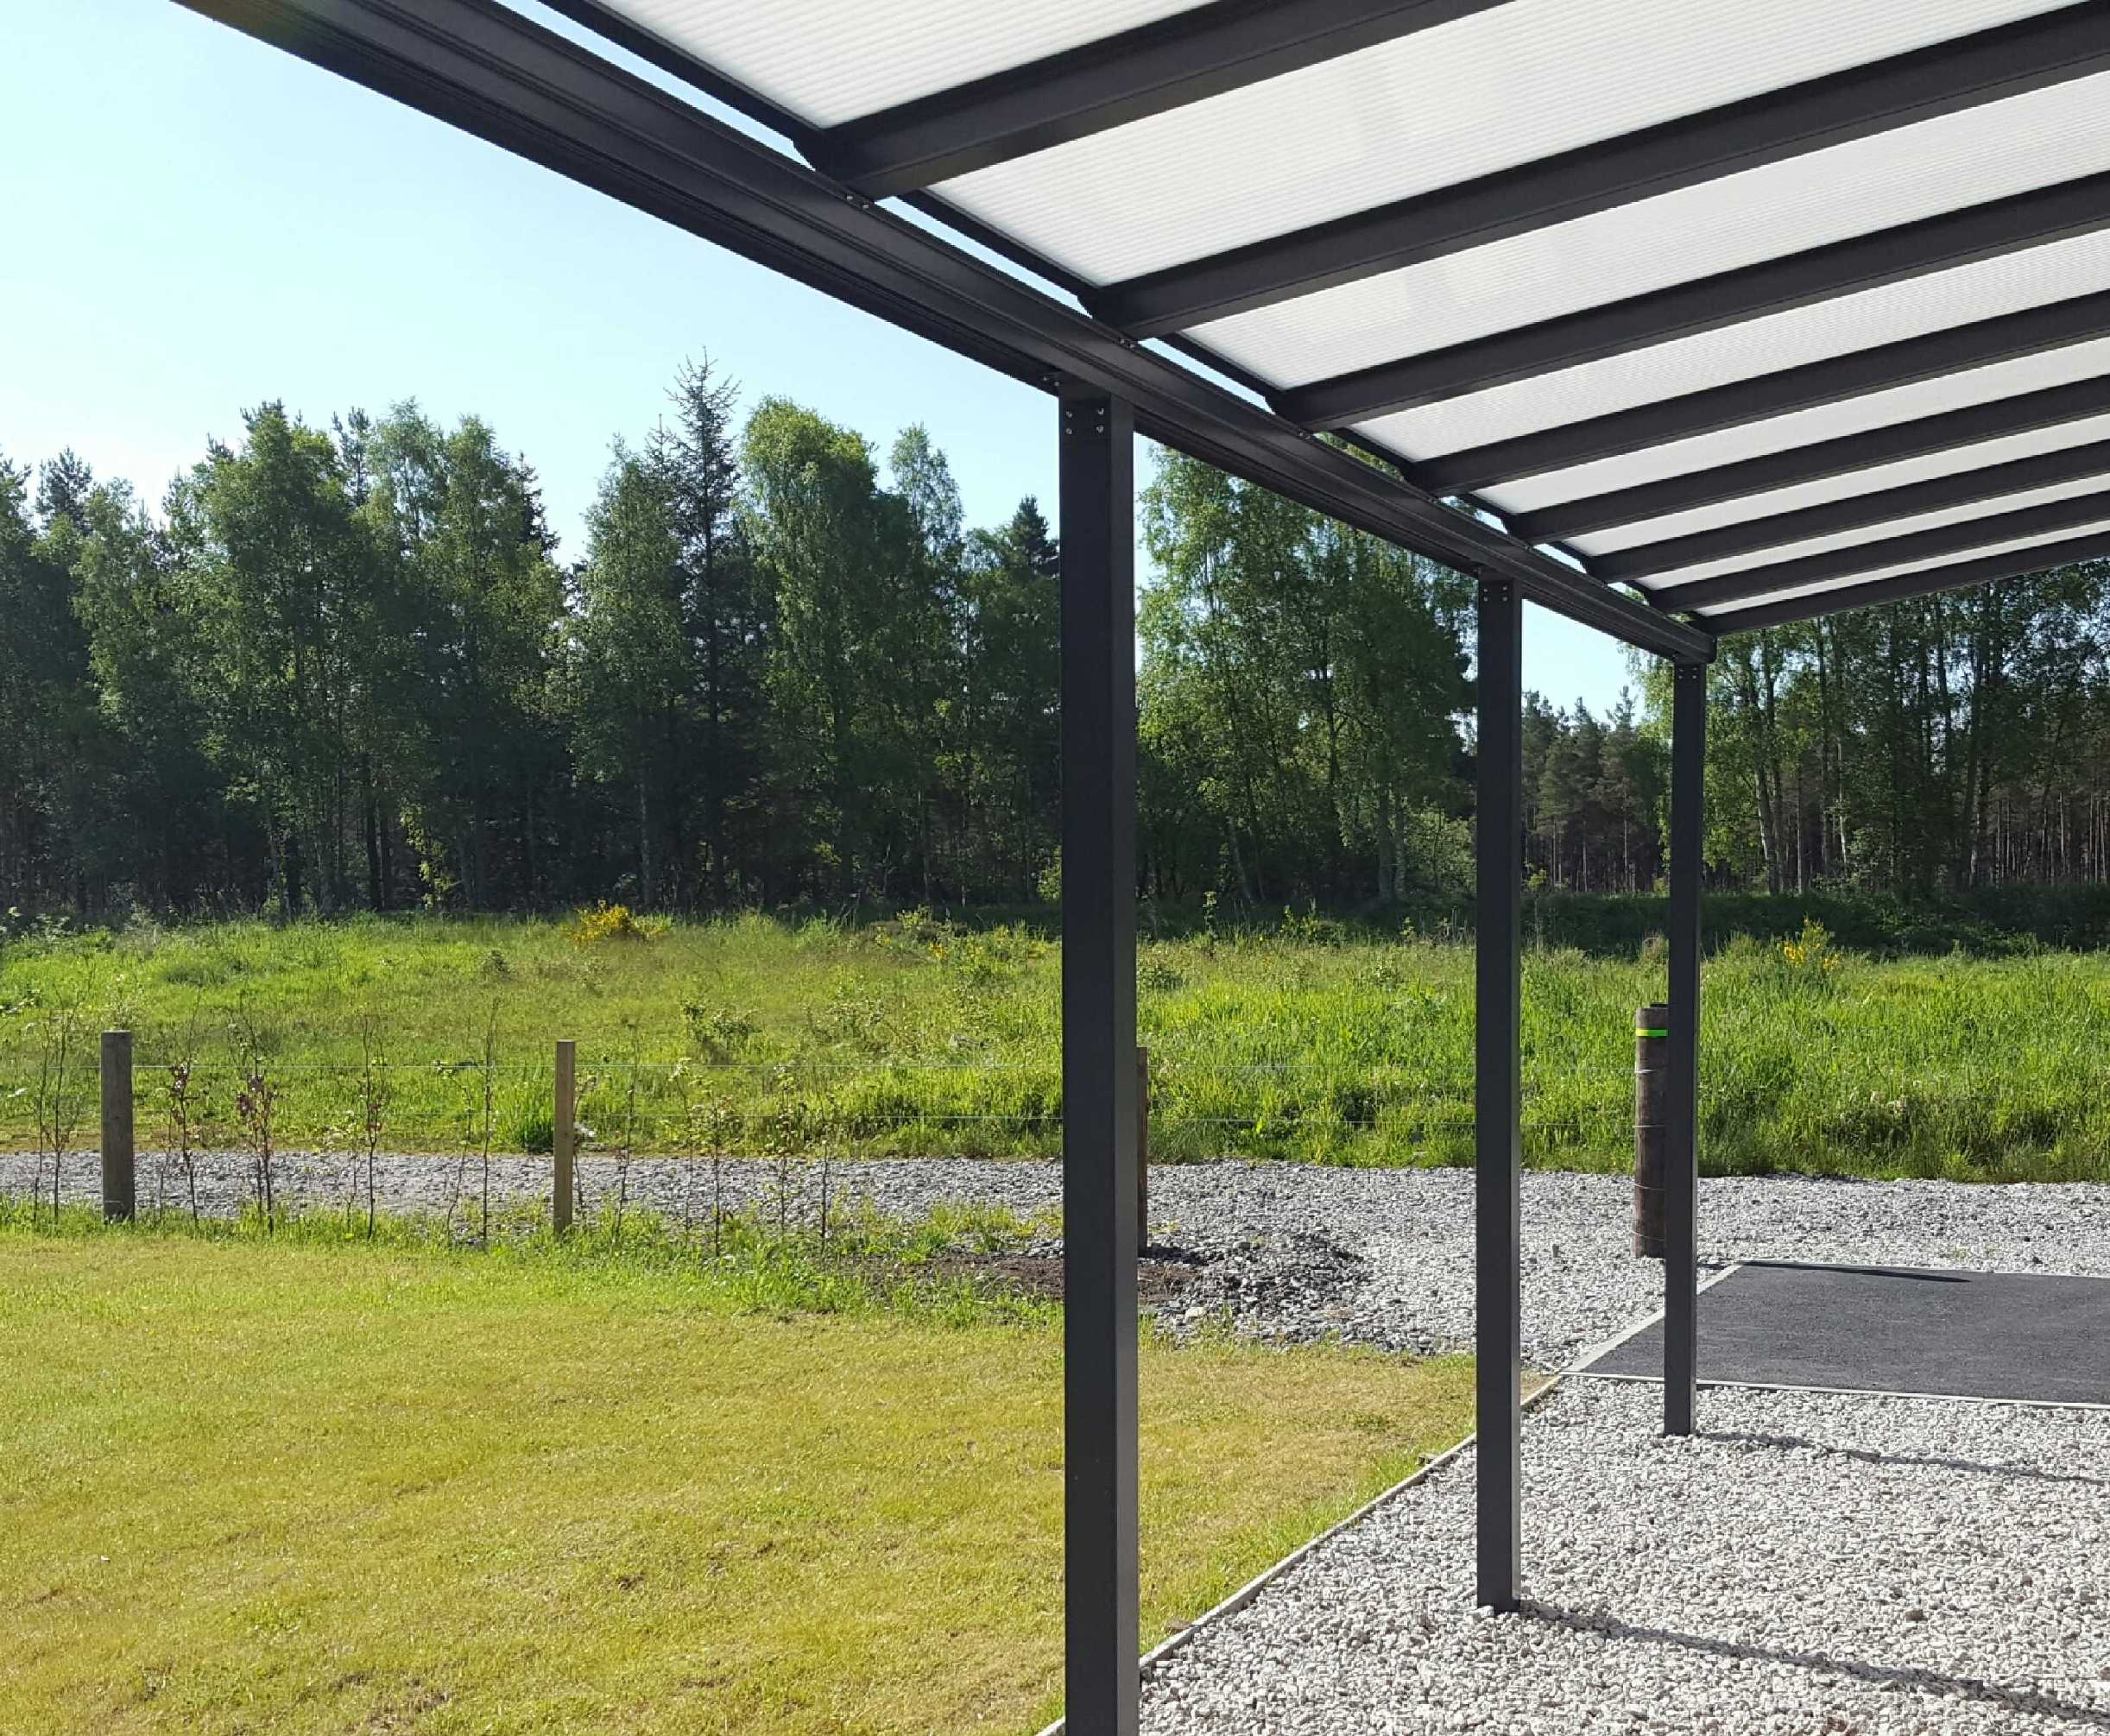 Omega Smart Lean-To Canopy, Anthracite Grey, UNGLAZED for 6mm Glazing - 5.6m (W) x 1.5m (P), (3) Supporting Posts